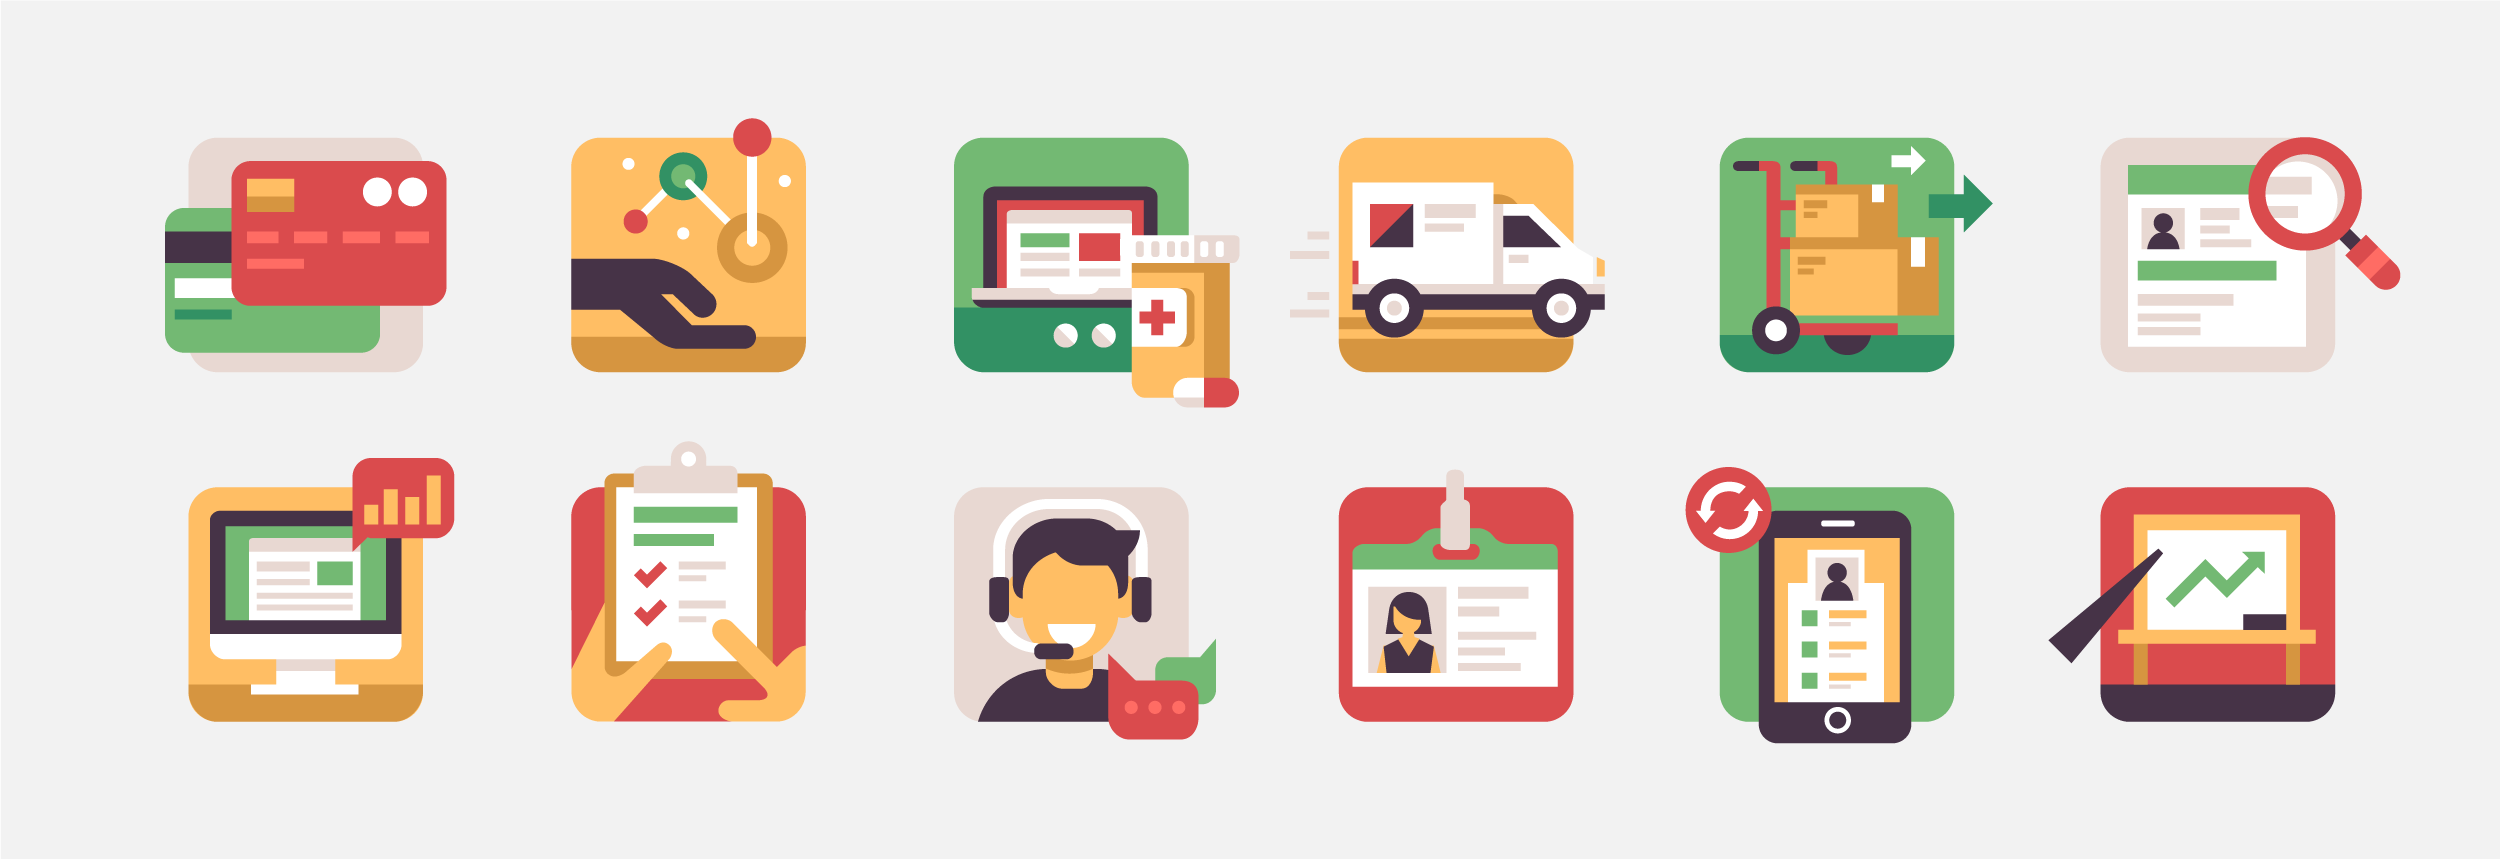 Alamo Pharma Service Illustrations by Matt Anderson - Pharma Website Icons